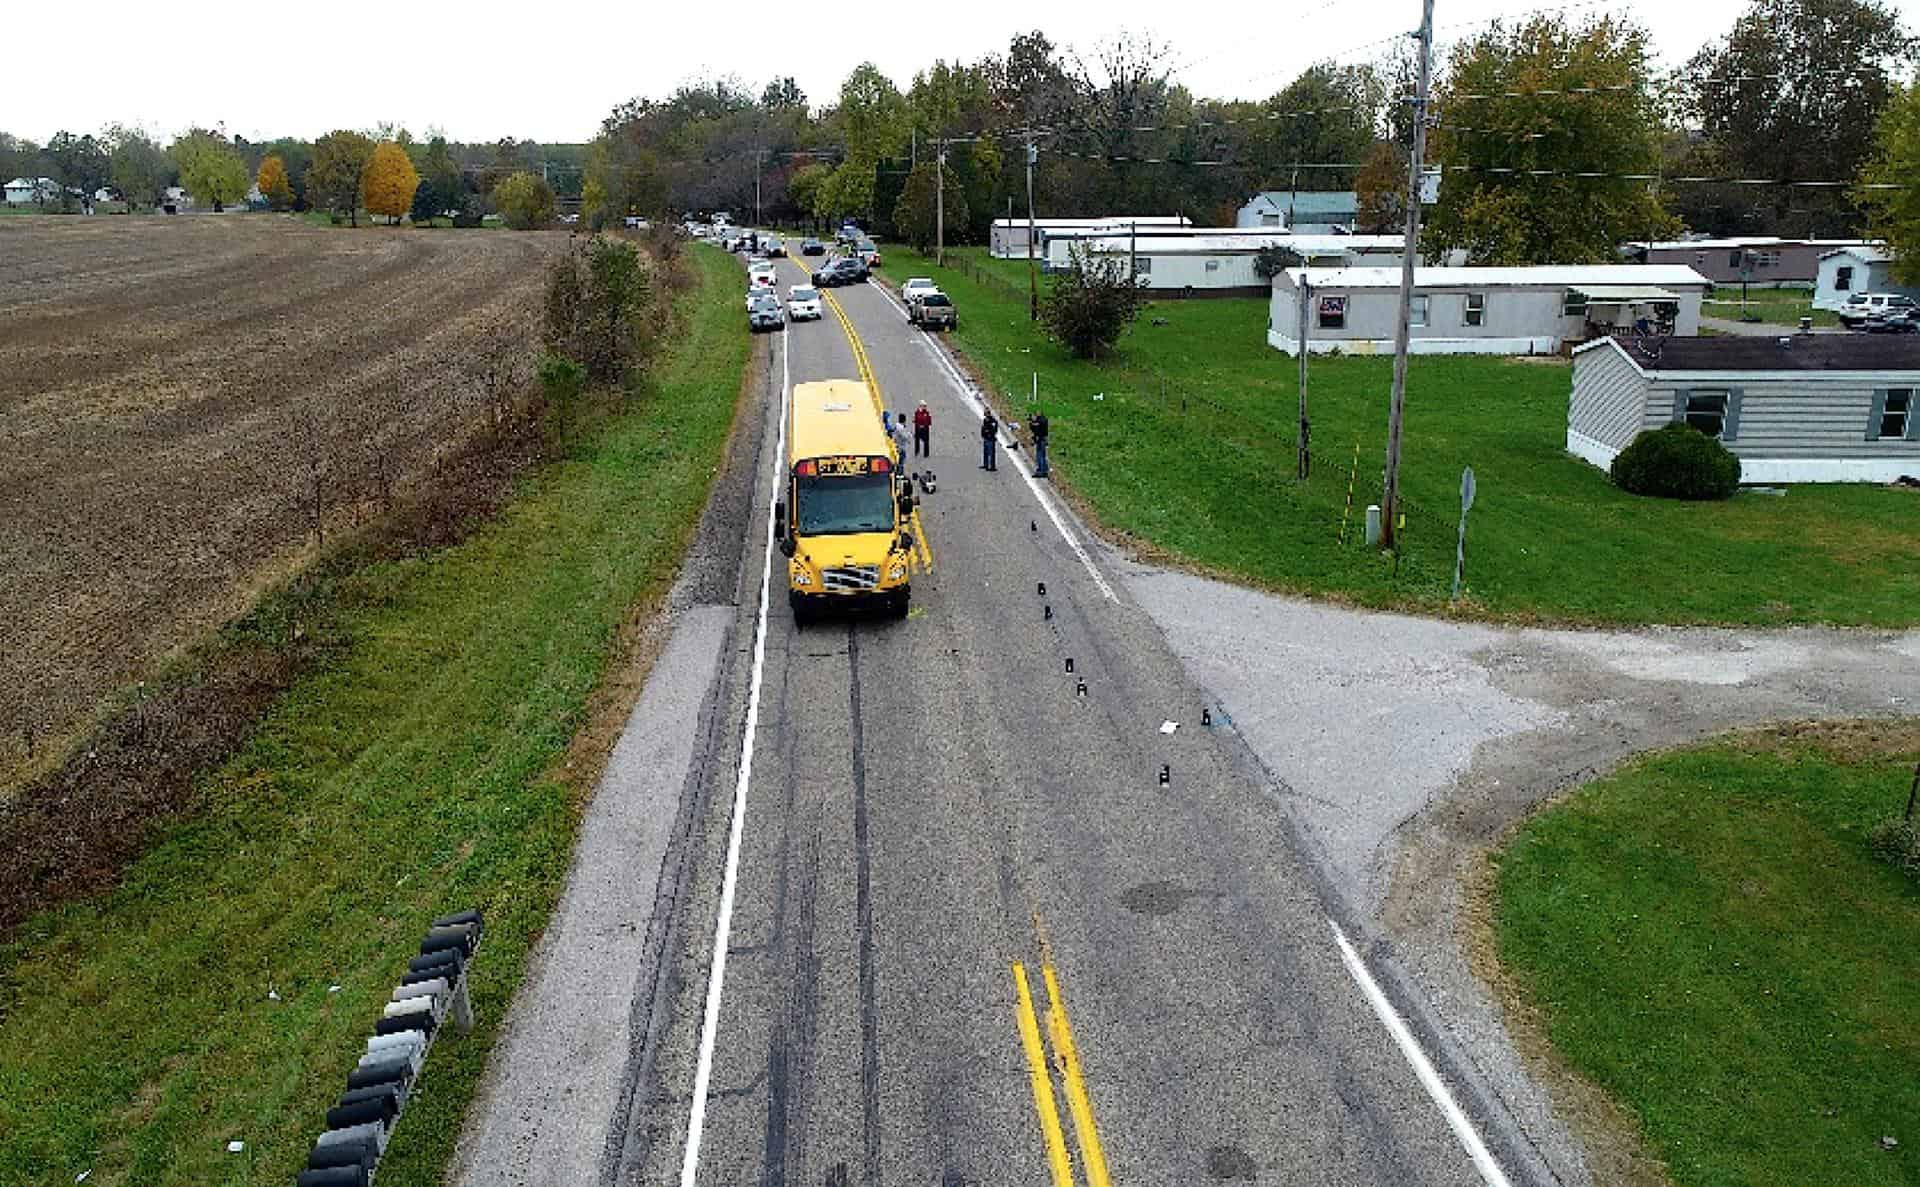 Fulton county indiana bus stop accident